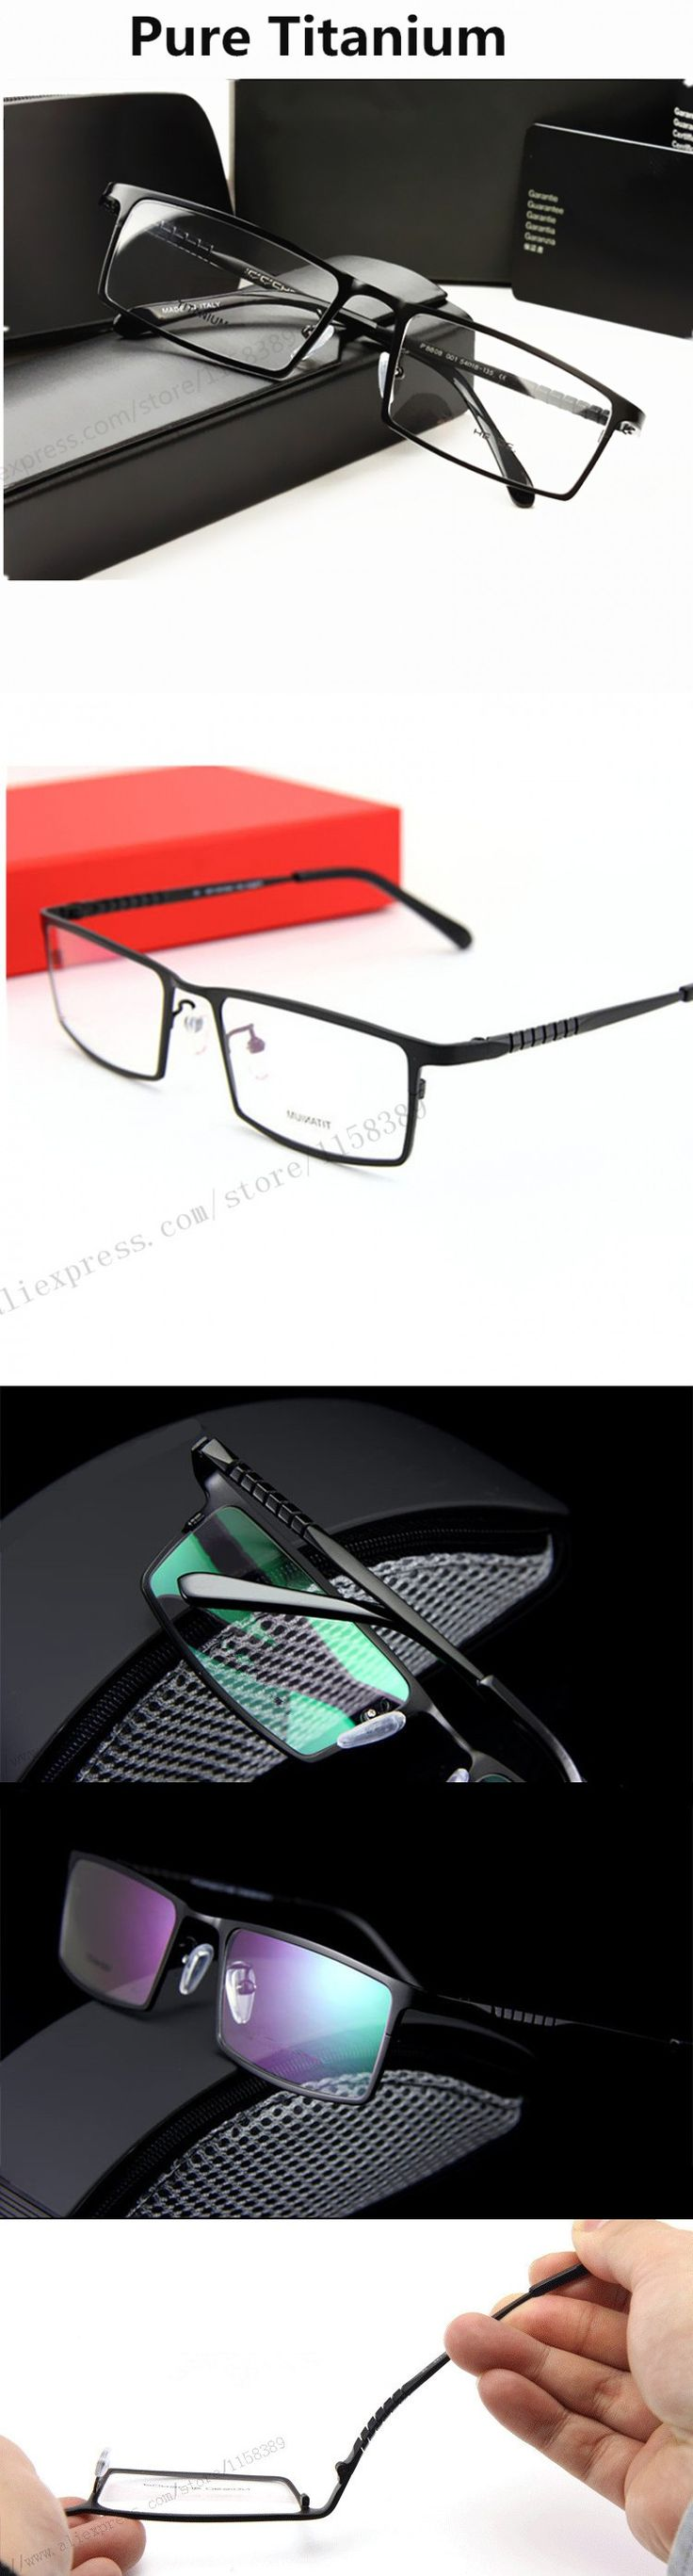 Glasses P8808 Titanium Eyeglasses Frames Men Optical Glasses Frame Glasses Prescription Eyewear For Business Men Eye glasses $66.99